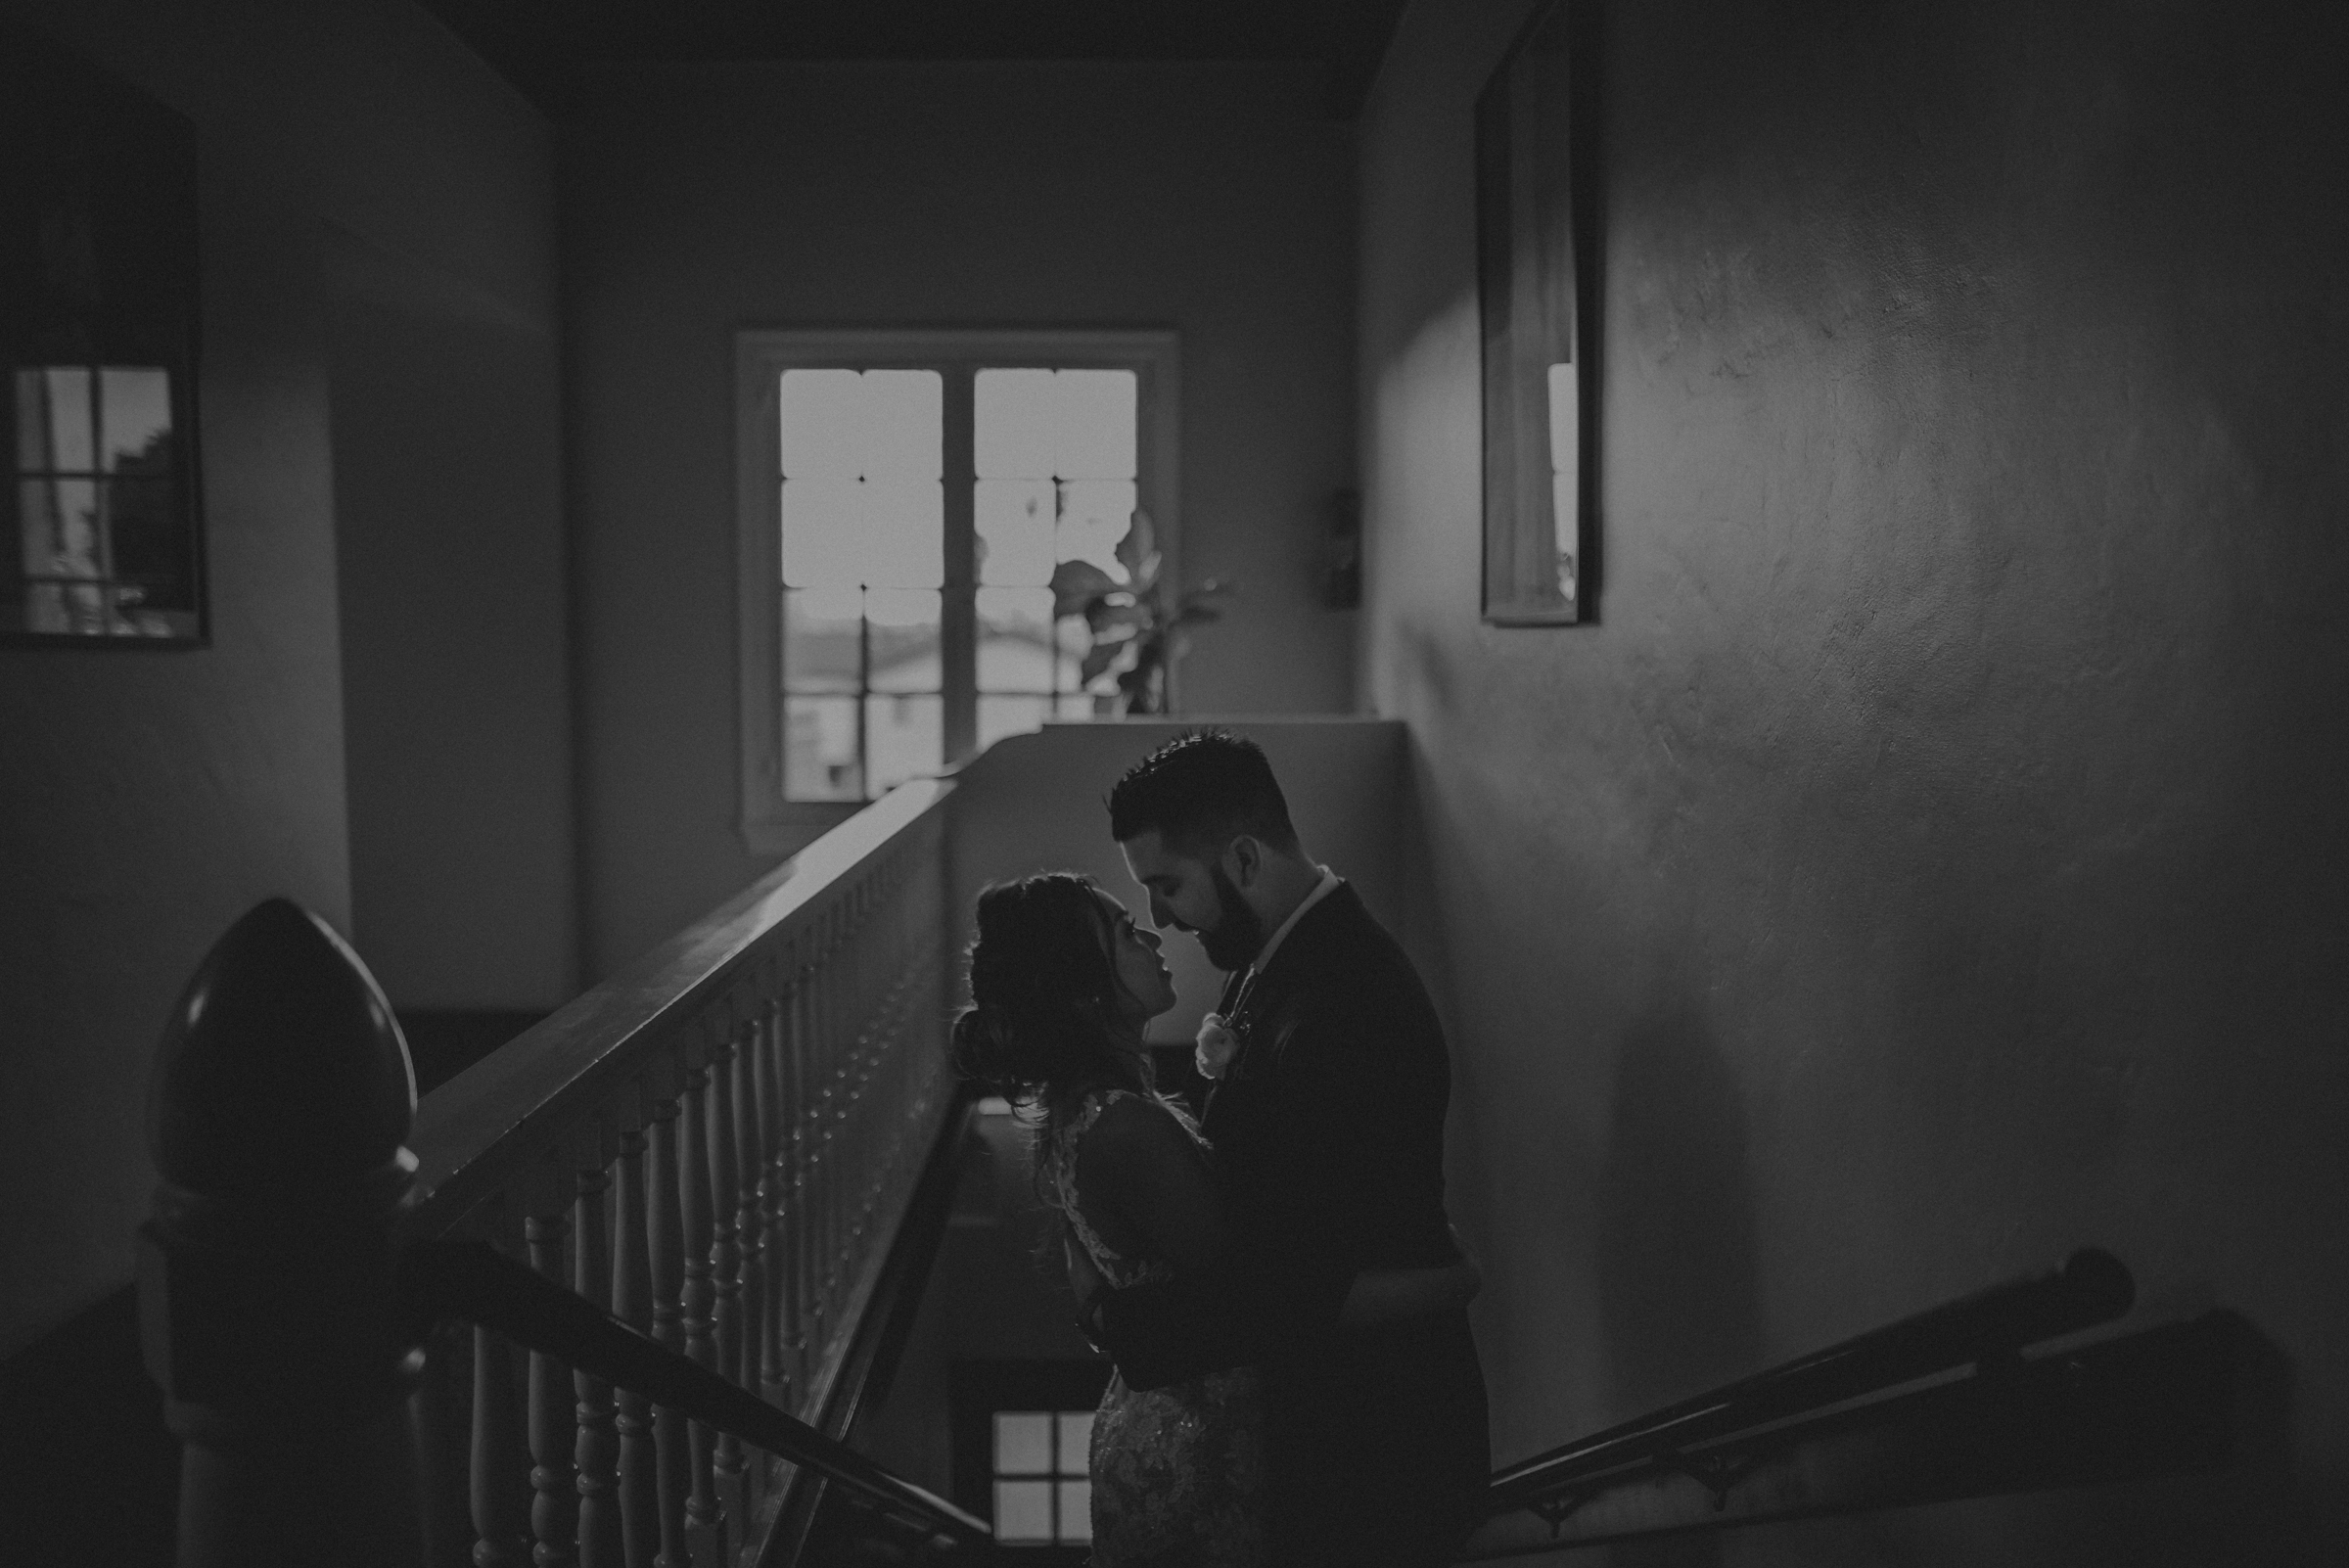 Los Angeles Wedding Photographer - IsaiahAndTaylor.com - The Ebell of Long Beach Wedding-083.jpg